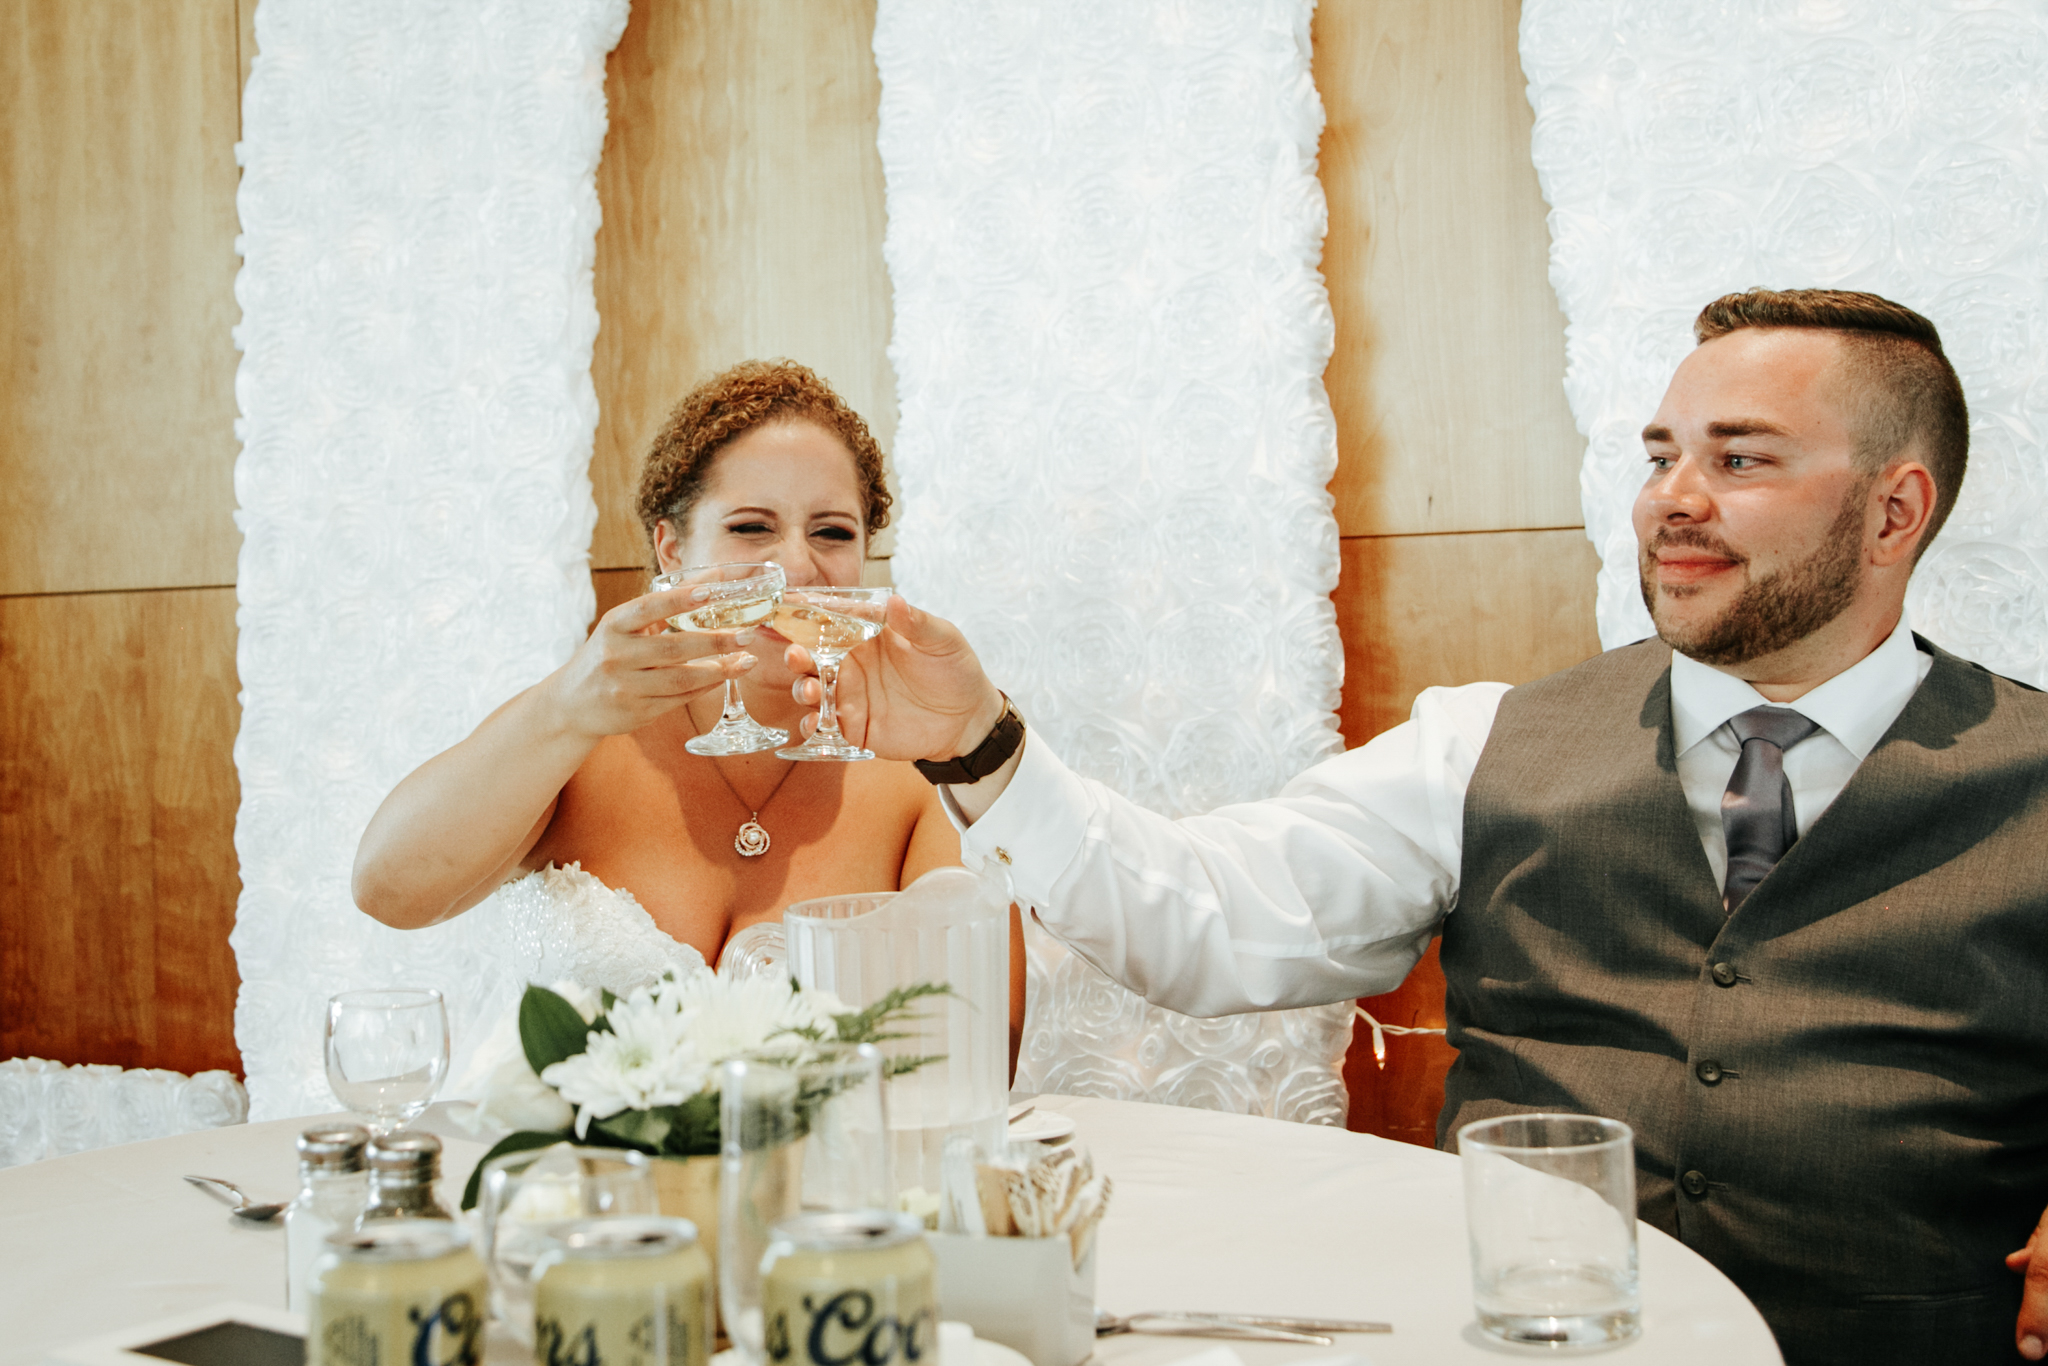 lethbridge-wedding-photographer-love-and-be-loved-photography-trent-danielle-galt-reception-picture-image-photo-186.jpg